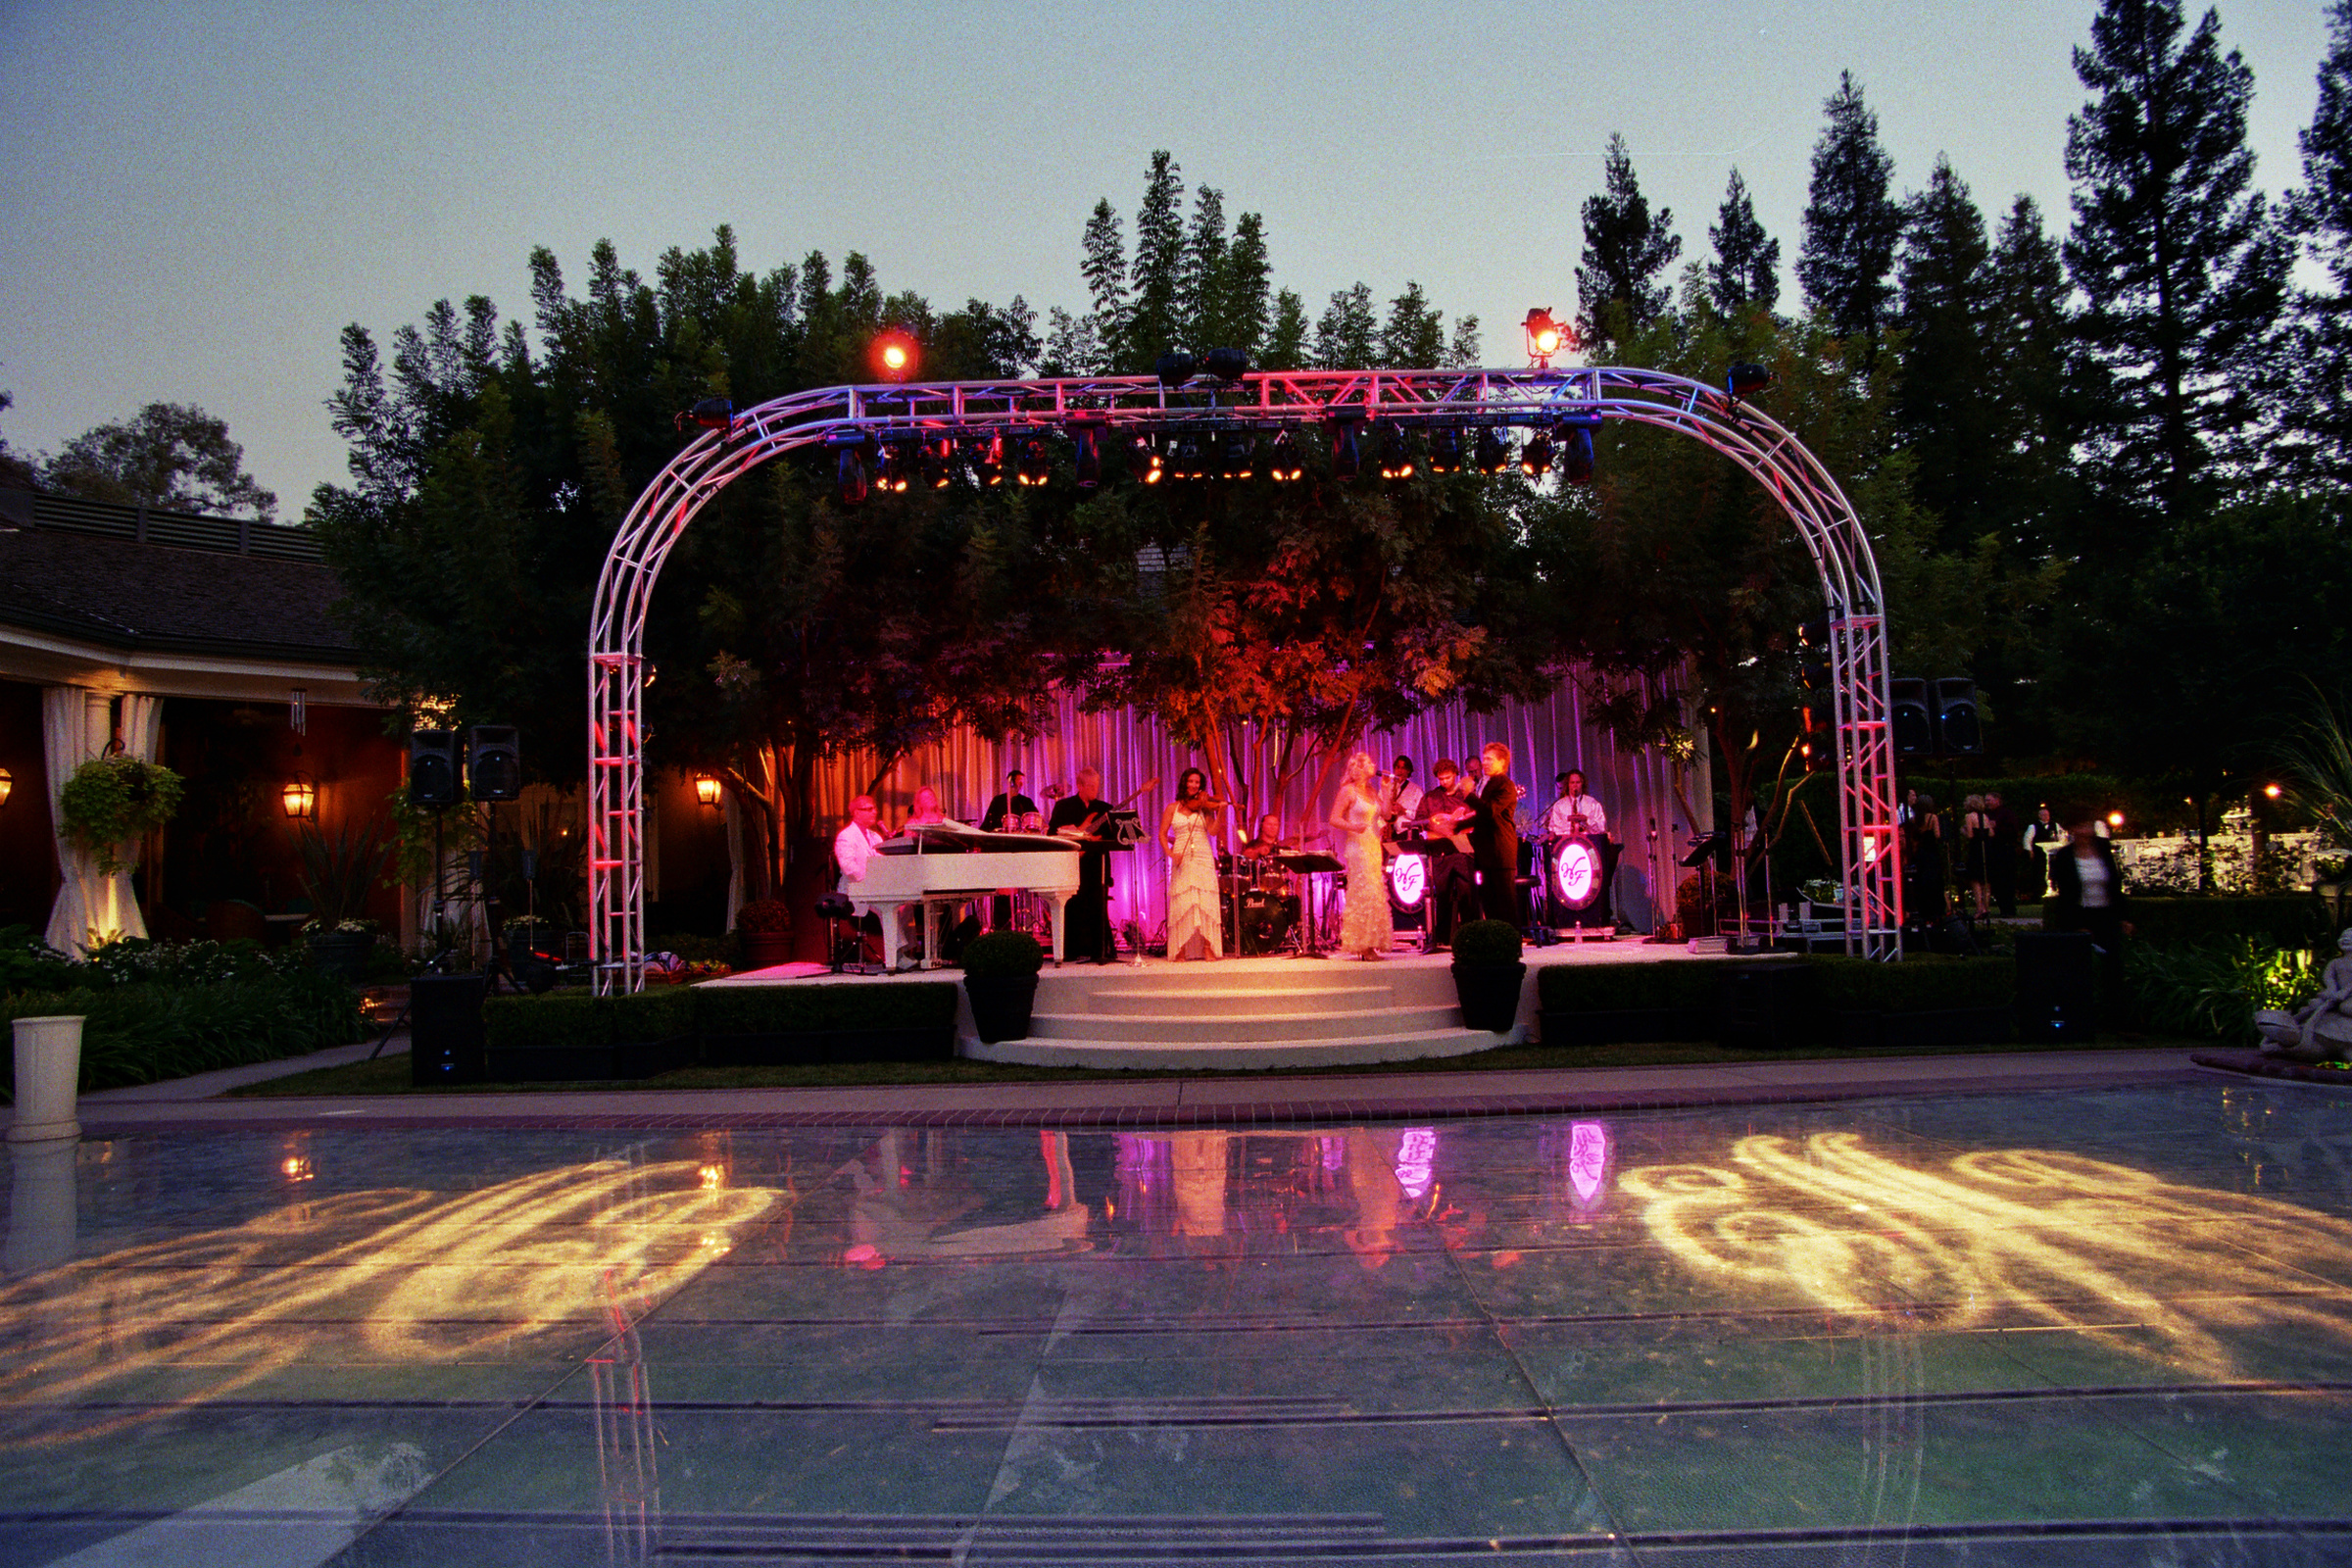 MacHaffrey Stage & Lights